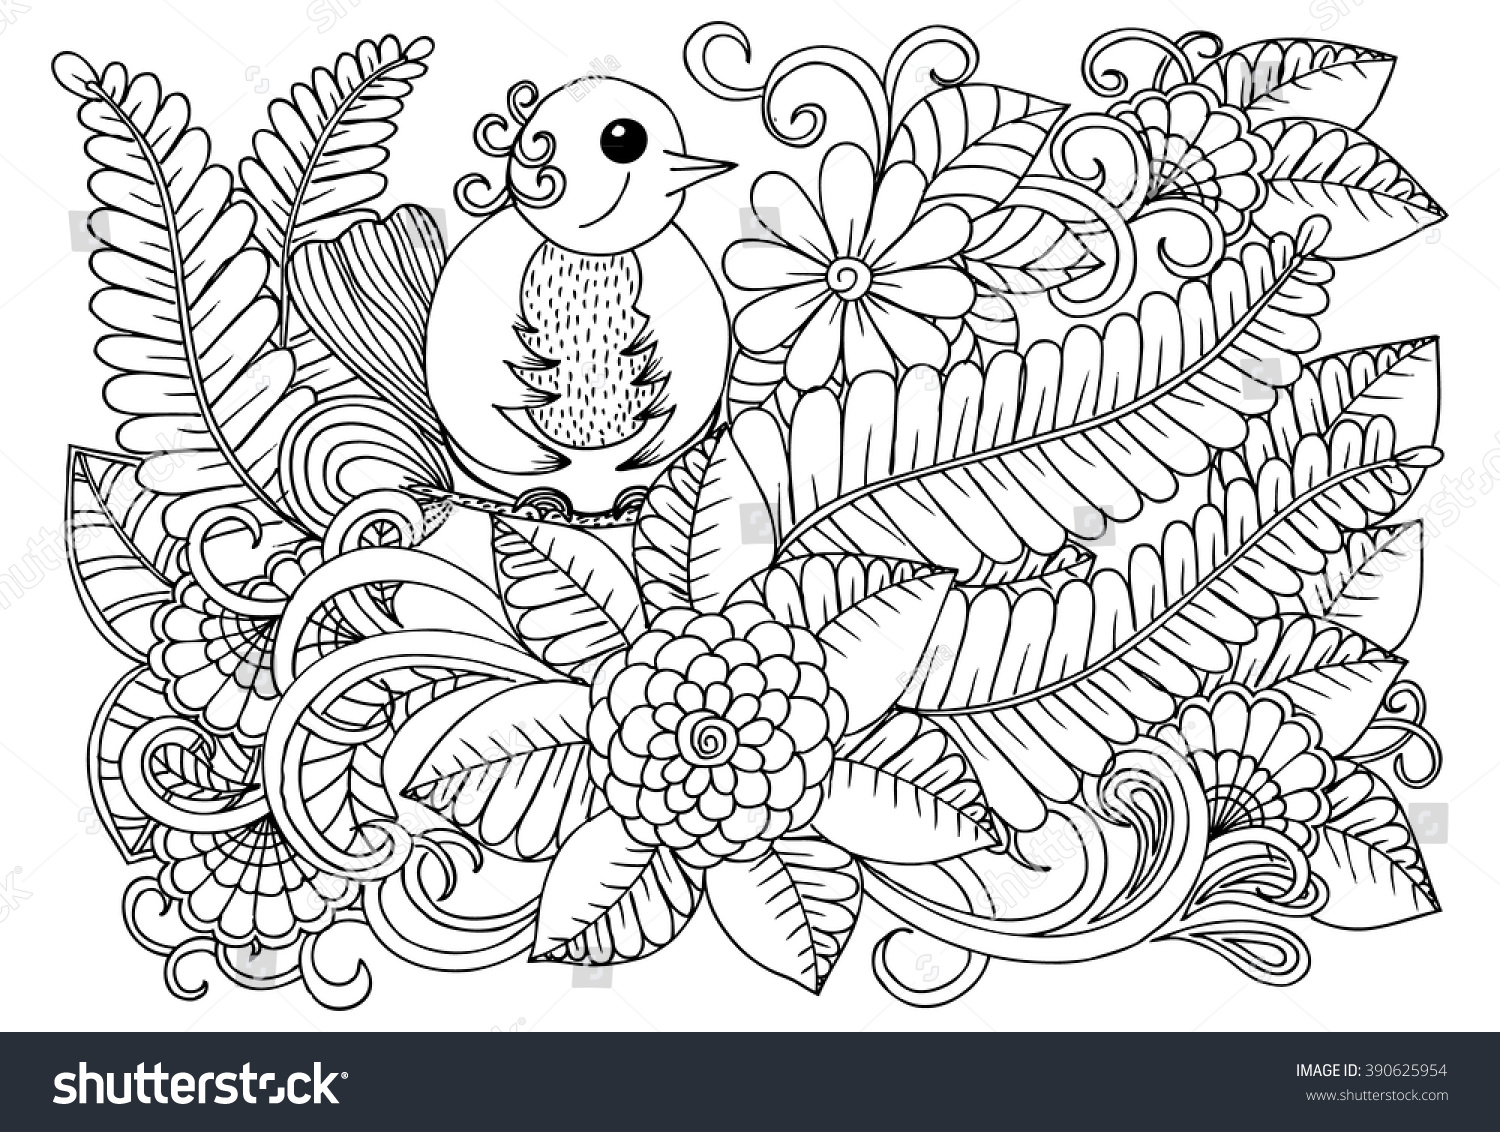 Bird On Doodle Flower Pattern Beautiful Floral Drawing In Black And White Adult Coloring Book